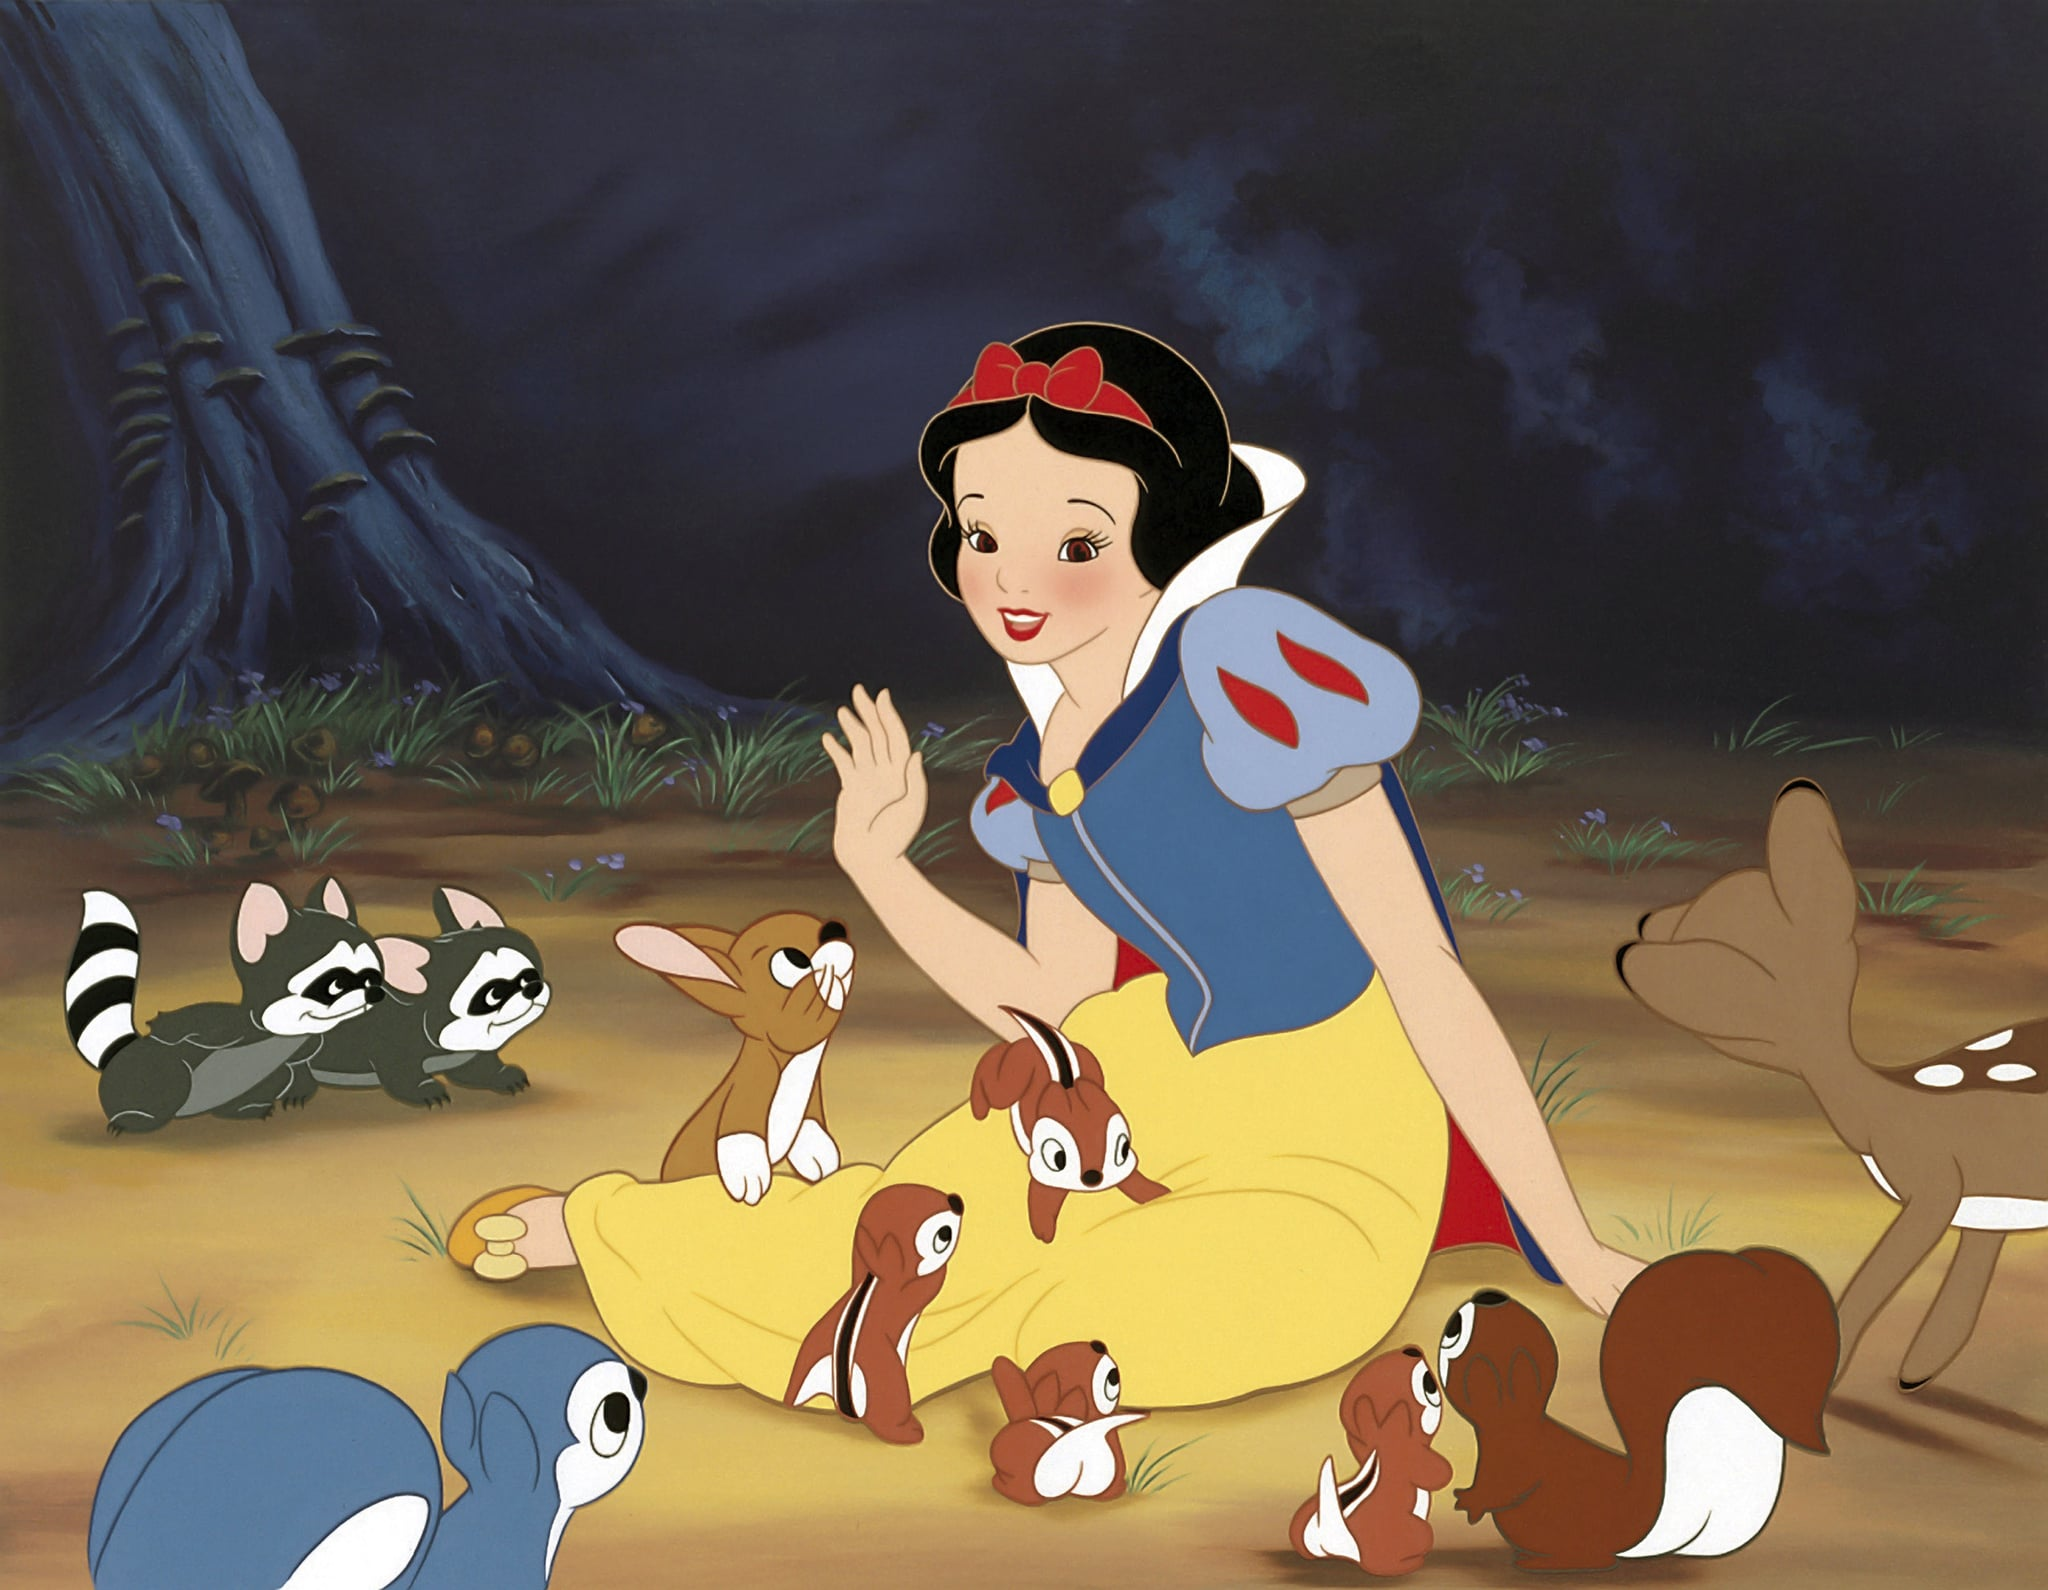 SNOW WHITE AND THE SEVEN DWARFS, Snow White, 1937